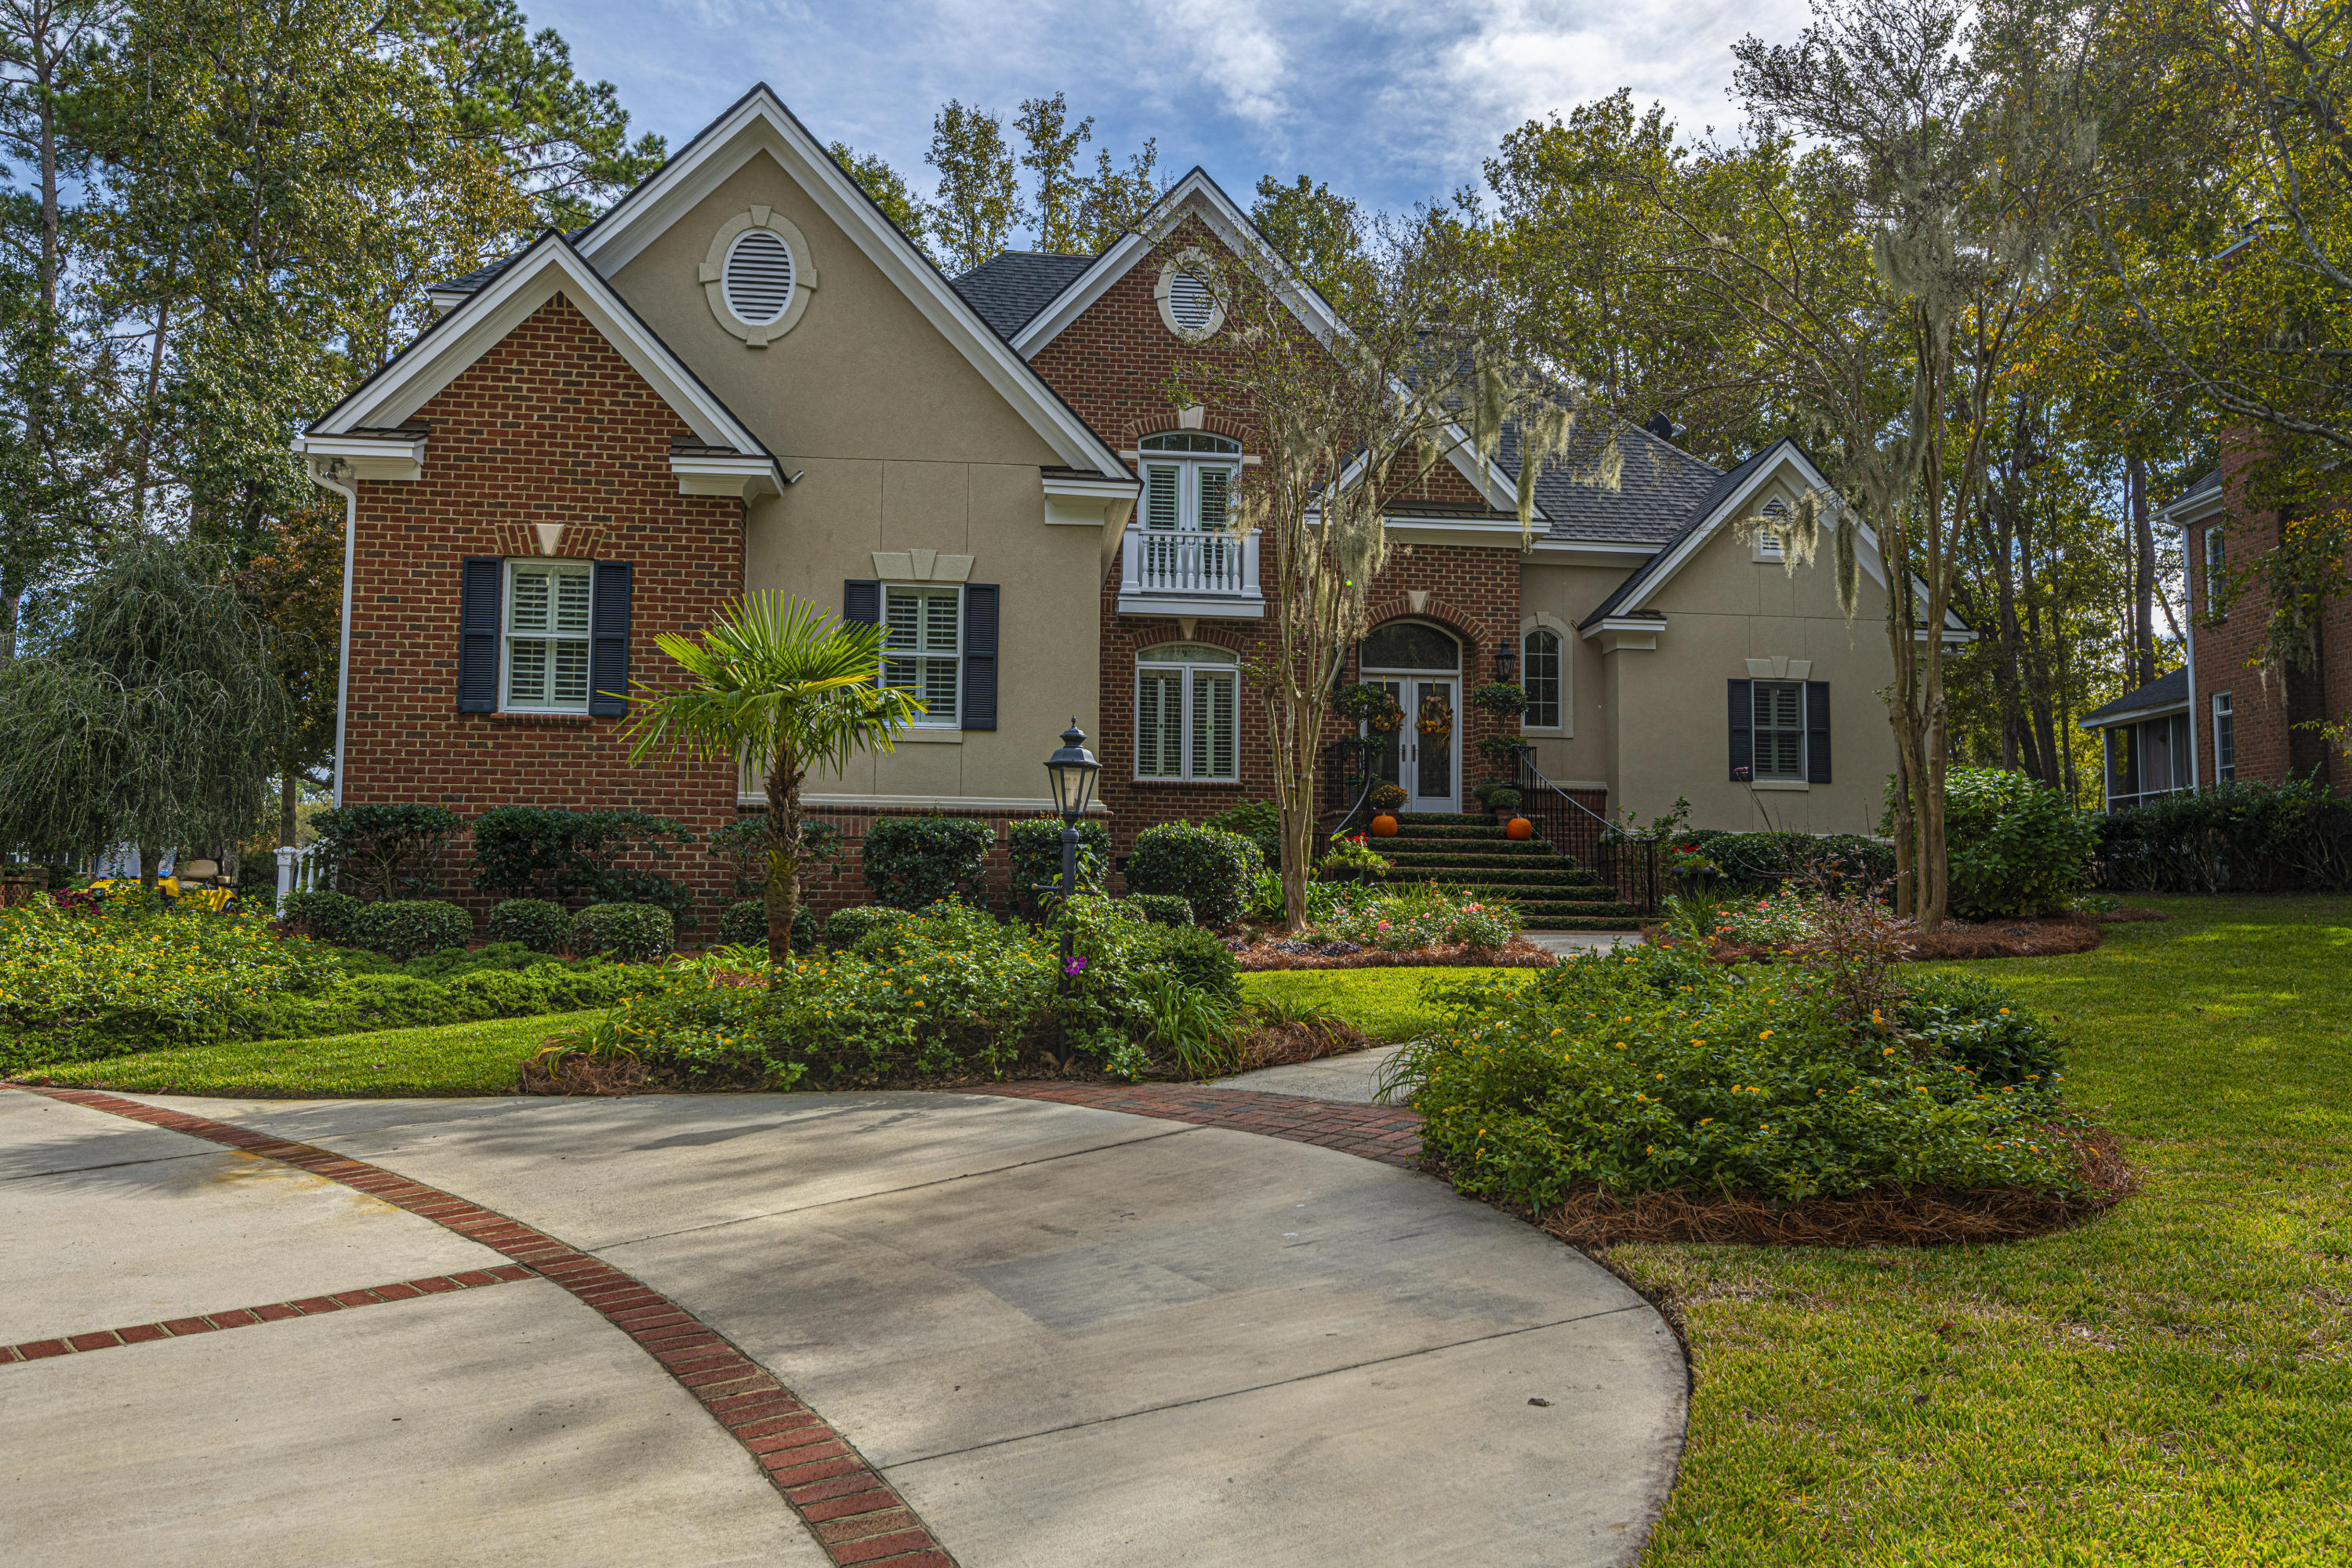 Coosaw Creek Country Club Homes For Sale - 8642 Fairway Woods, North Charleston, SC - 33